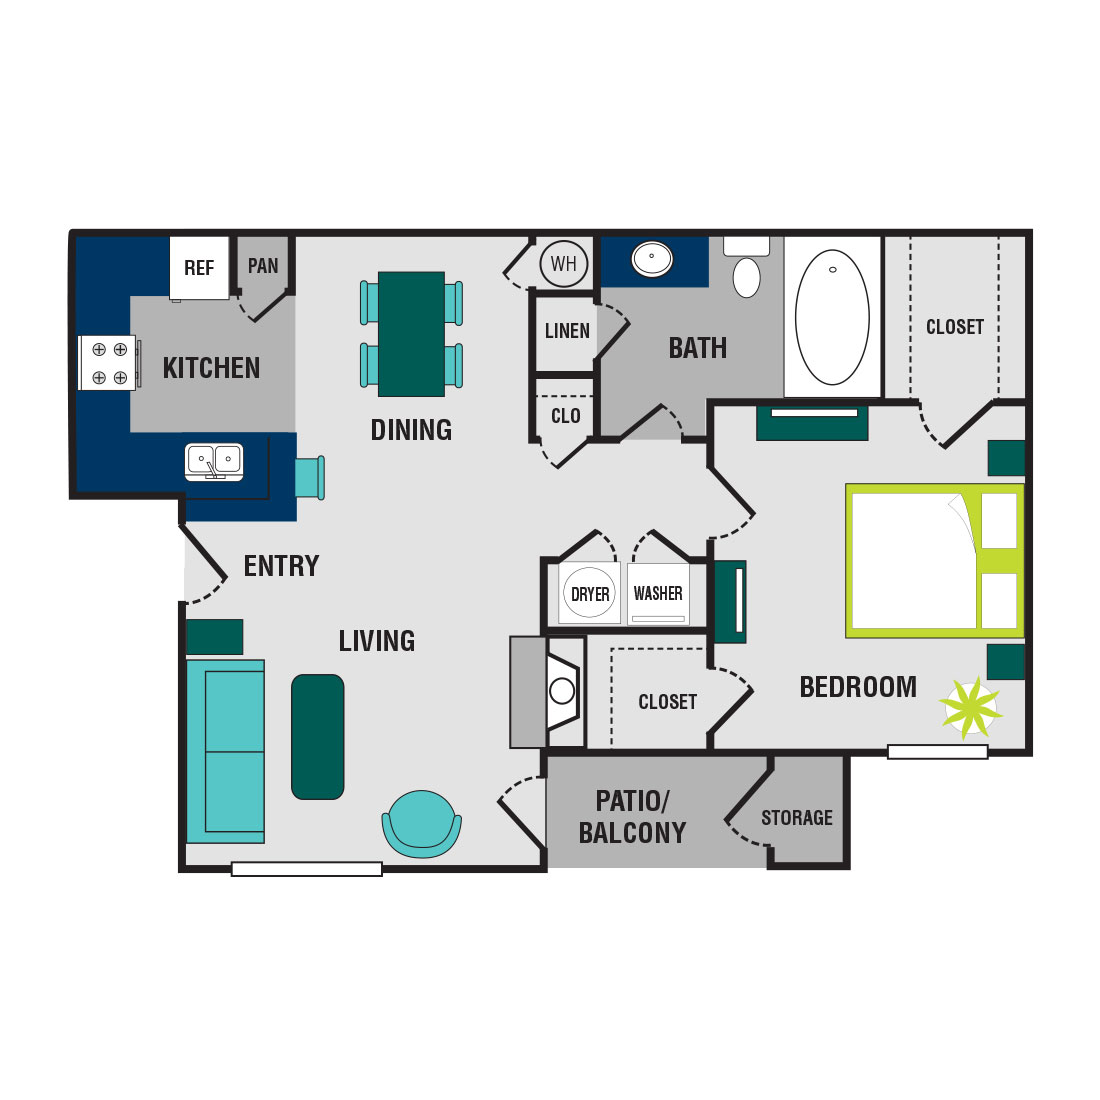 Floorplan - 1 Bedroom - Upgraded image